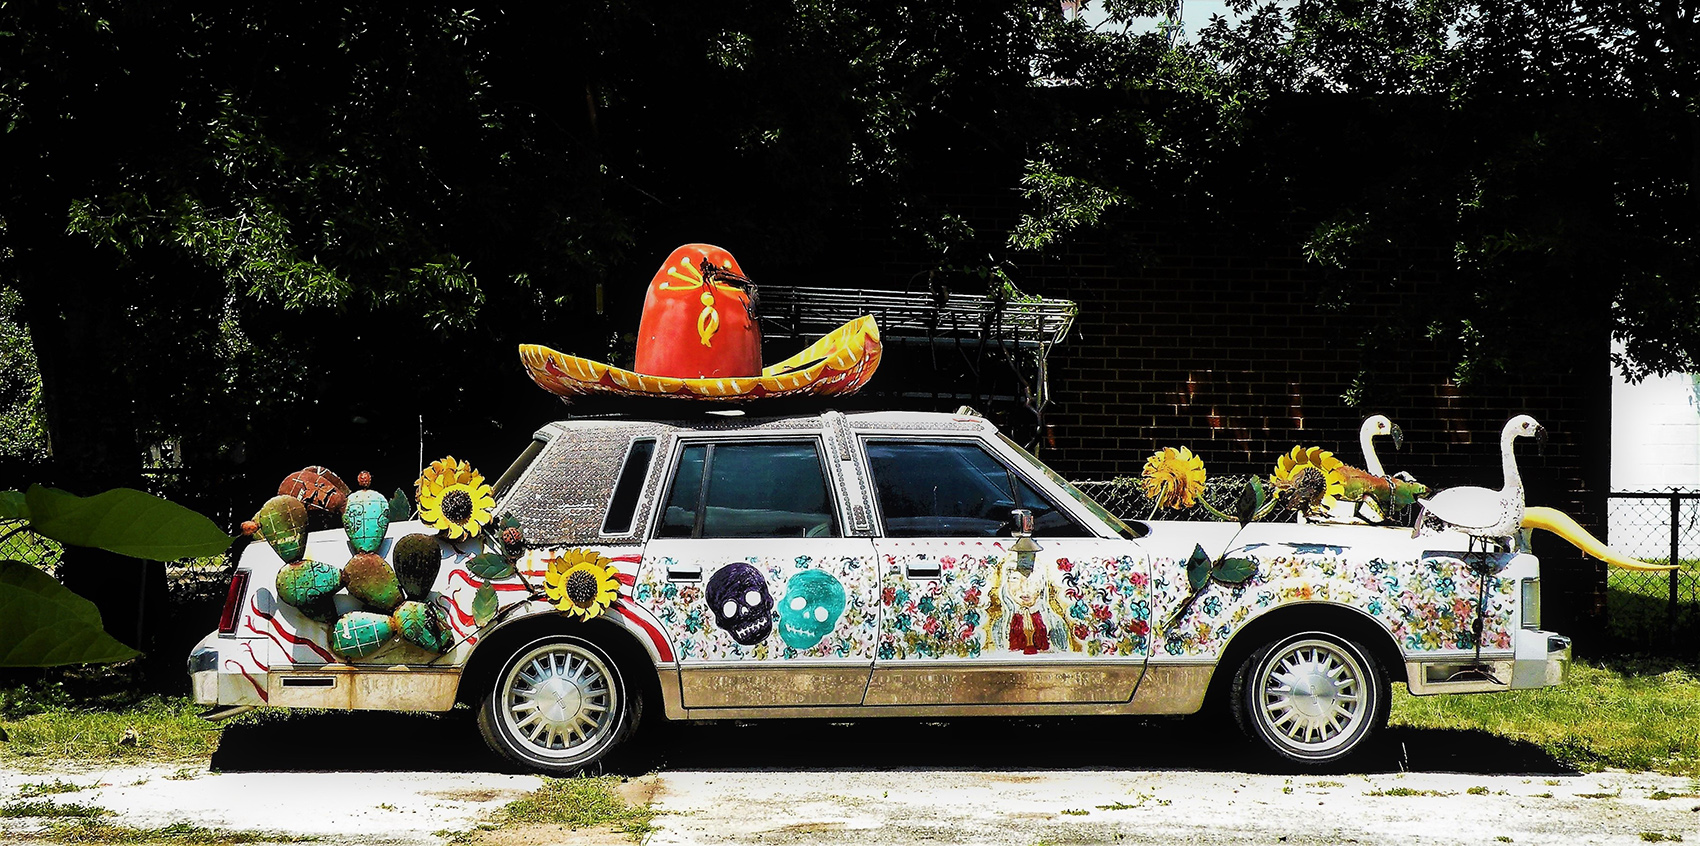 photo of decorated car - Cultura on Wheels by Anjela Villarreal Ratliff